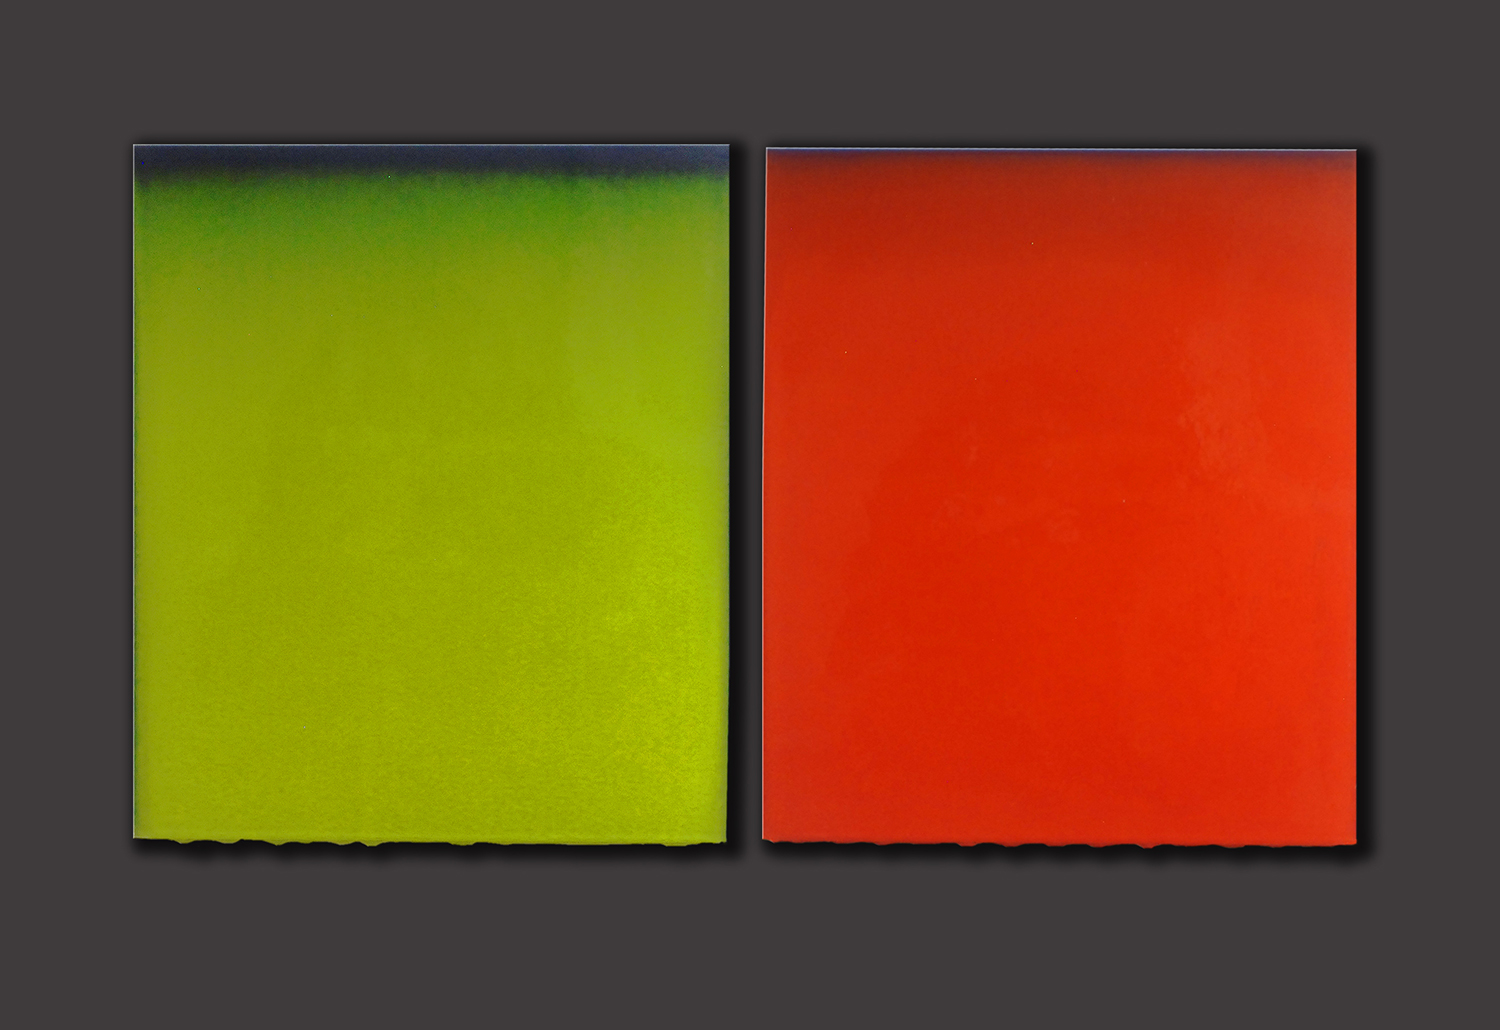 Untitled (Diptych), 2014